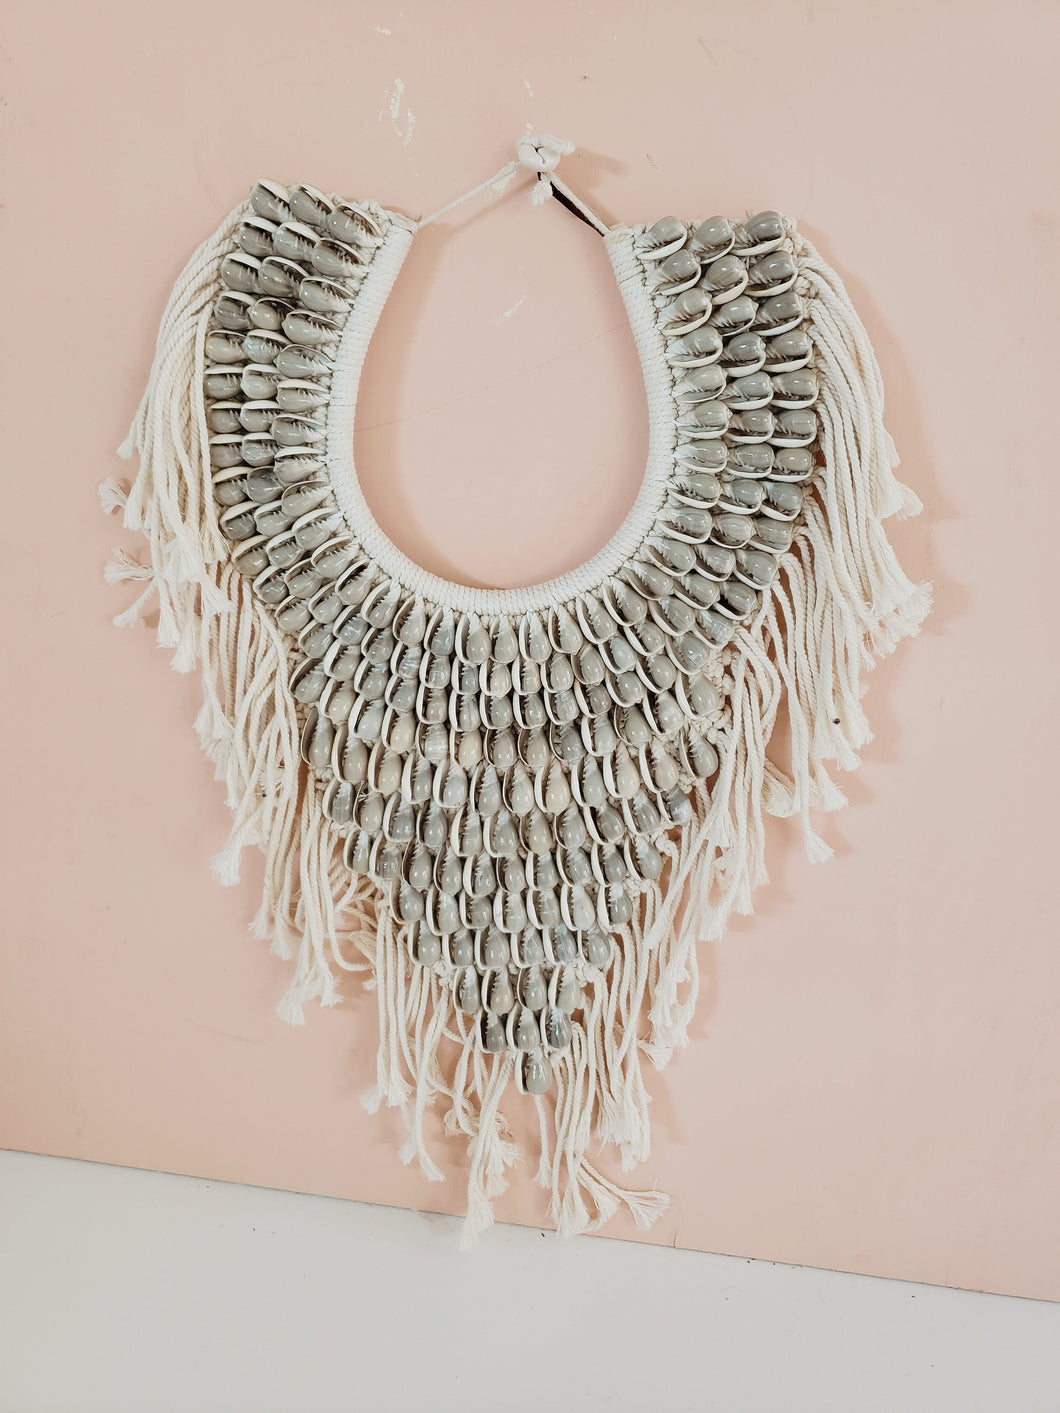 macrame shell necklace wall hanging